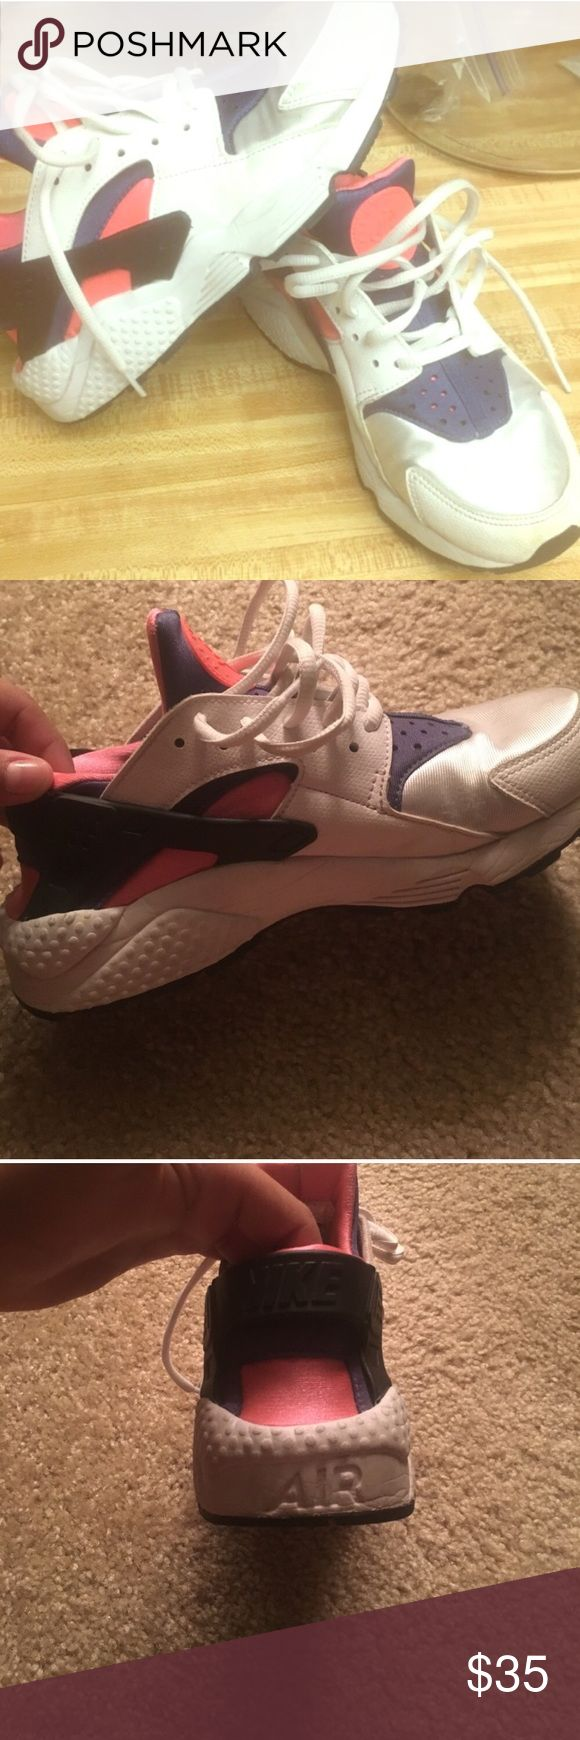 Nike huaraches size 8 rare colors! Pink blue white and silver , 8/10 condition Nike Shoes Sneakers